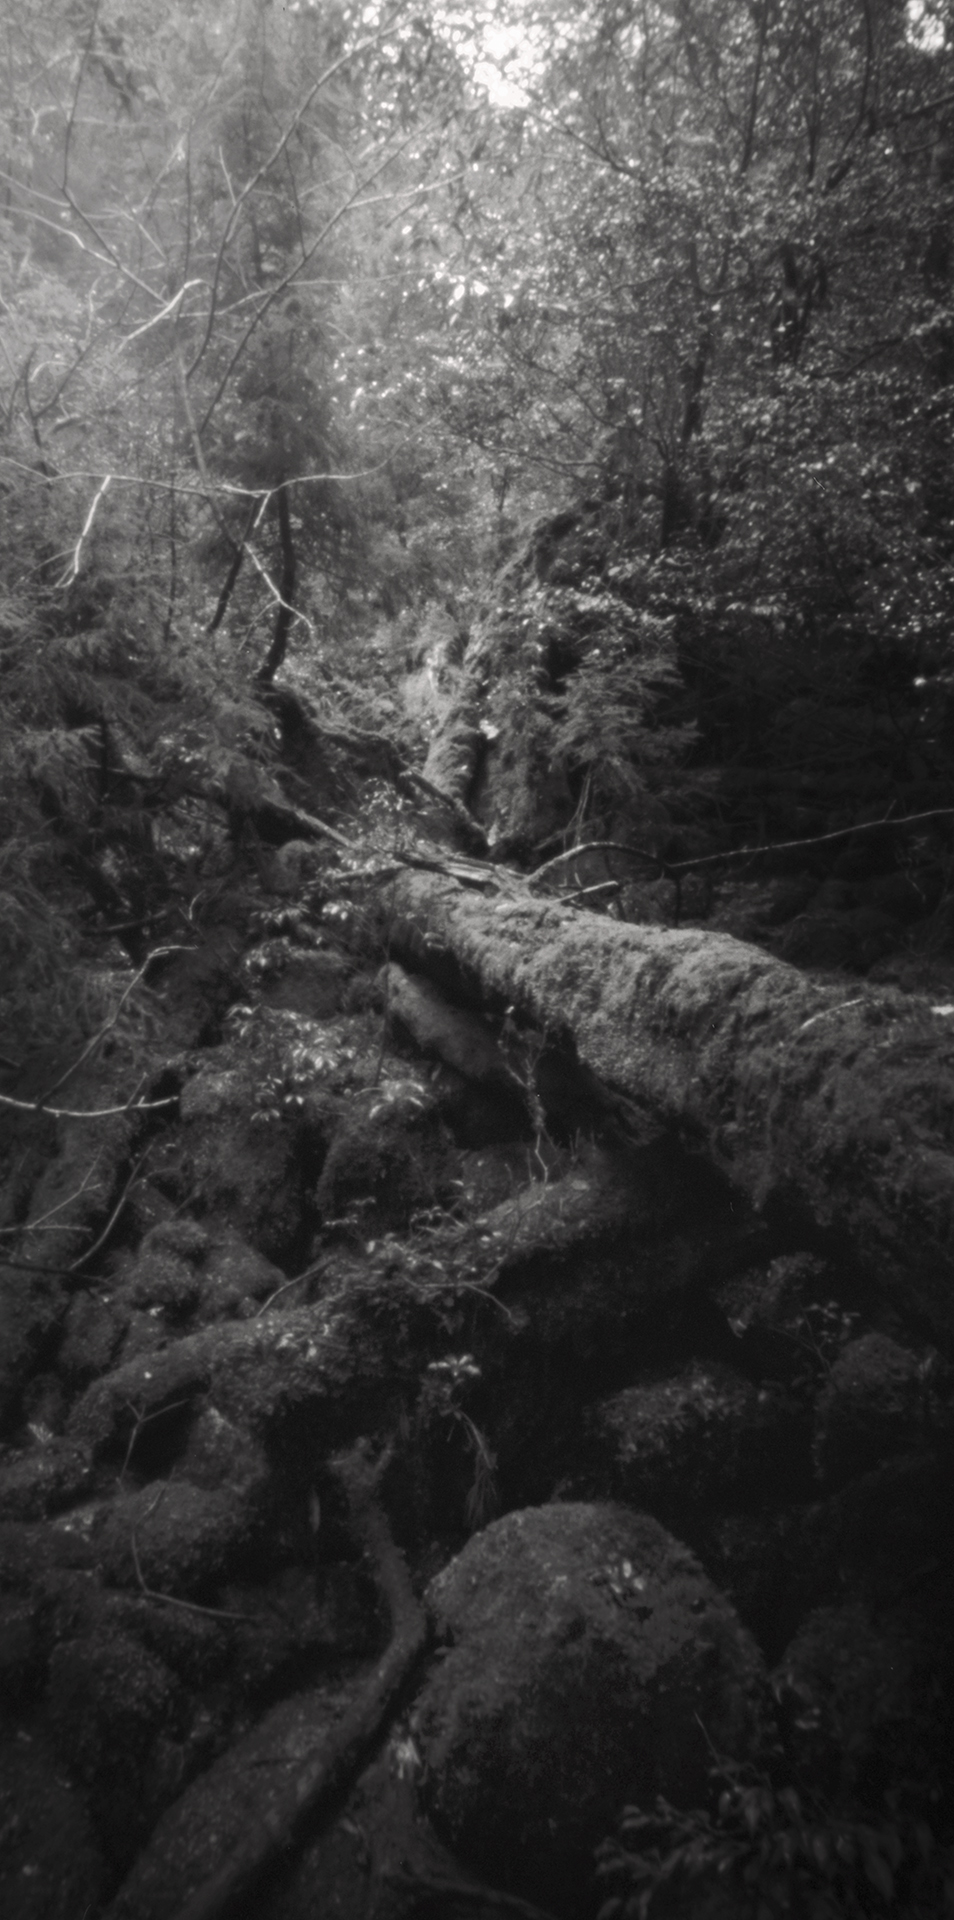 Fallen tree, Kusugawa trail. Japan, Yakushima, 2015